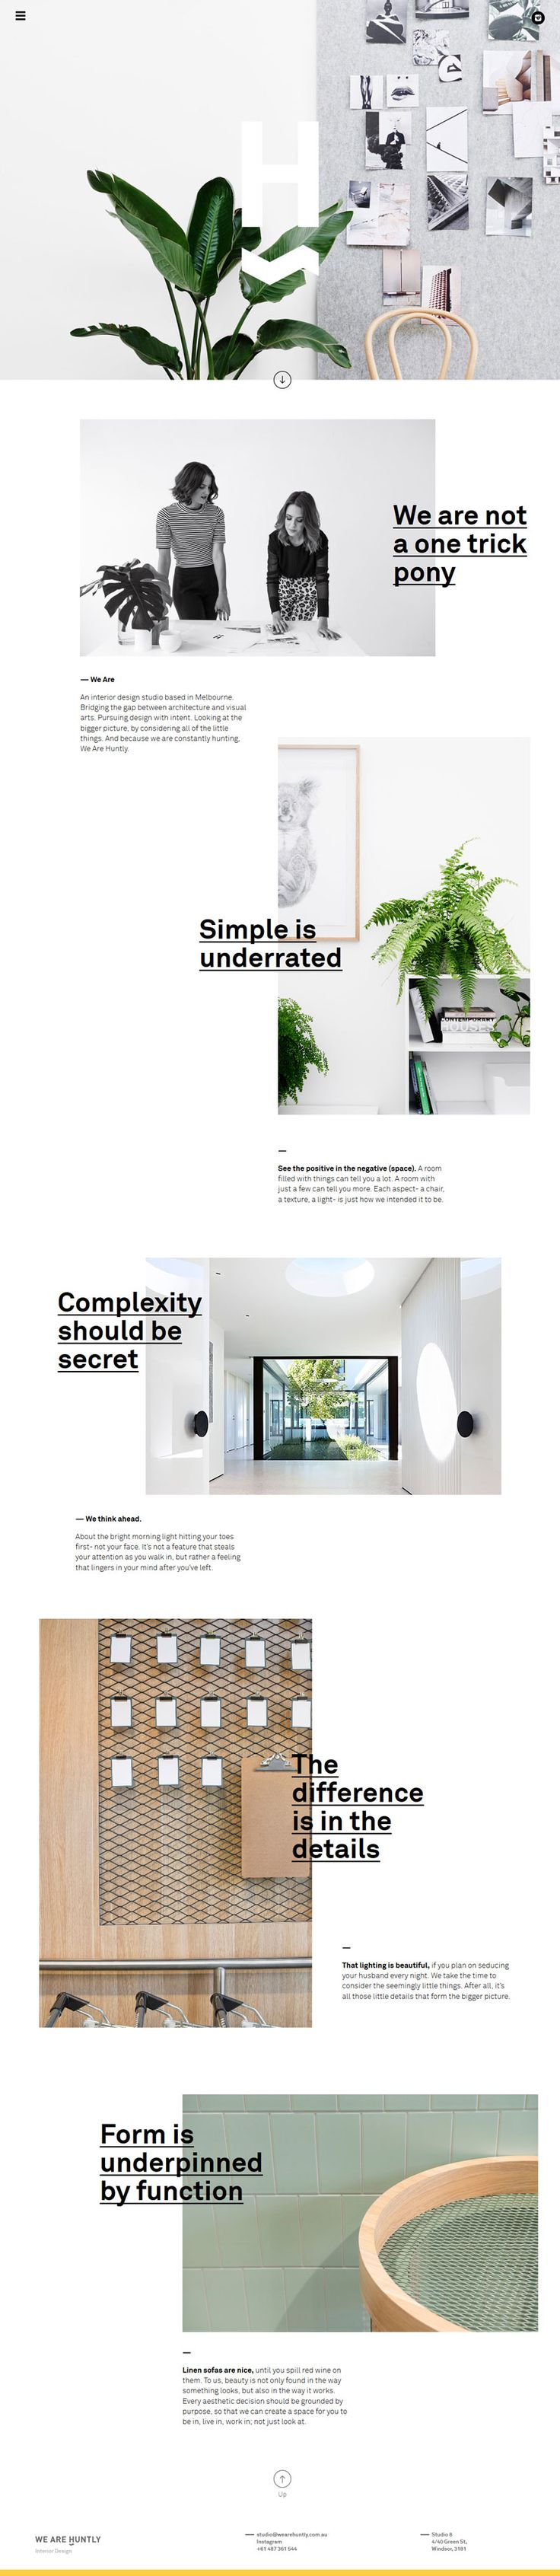 Huntly, minimal creative design website